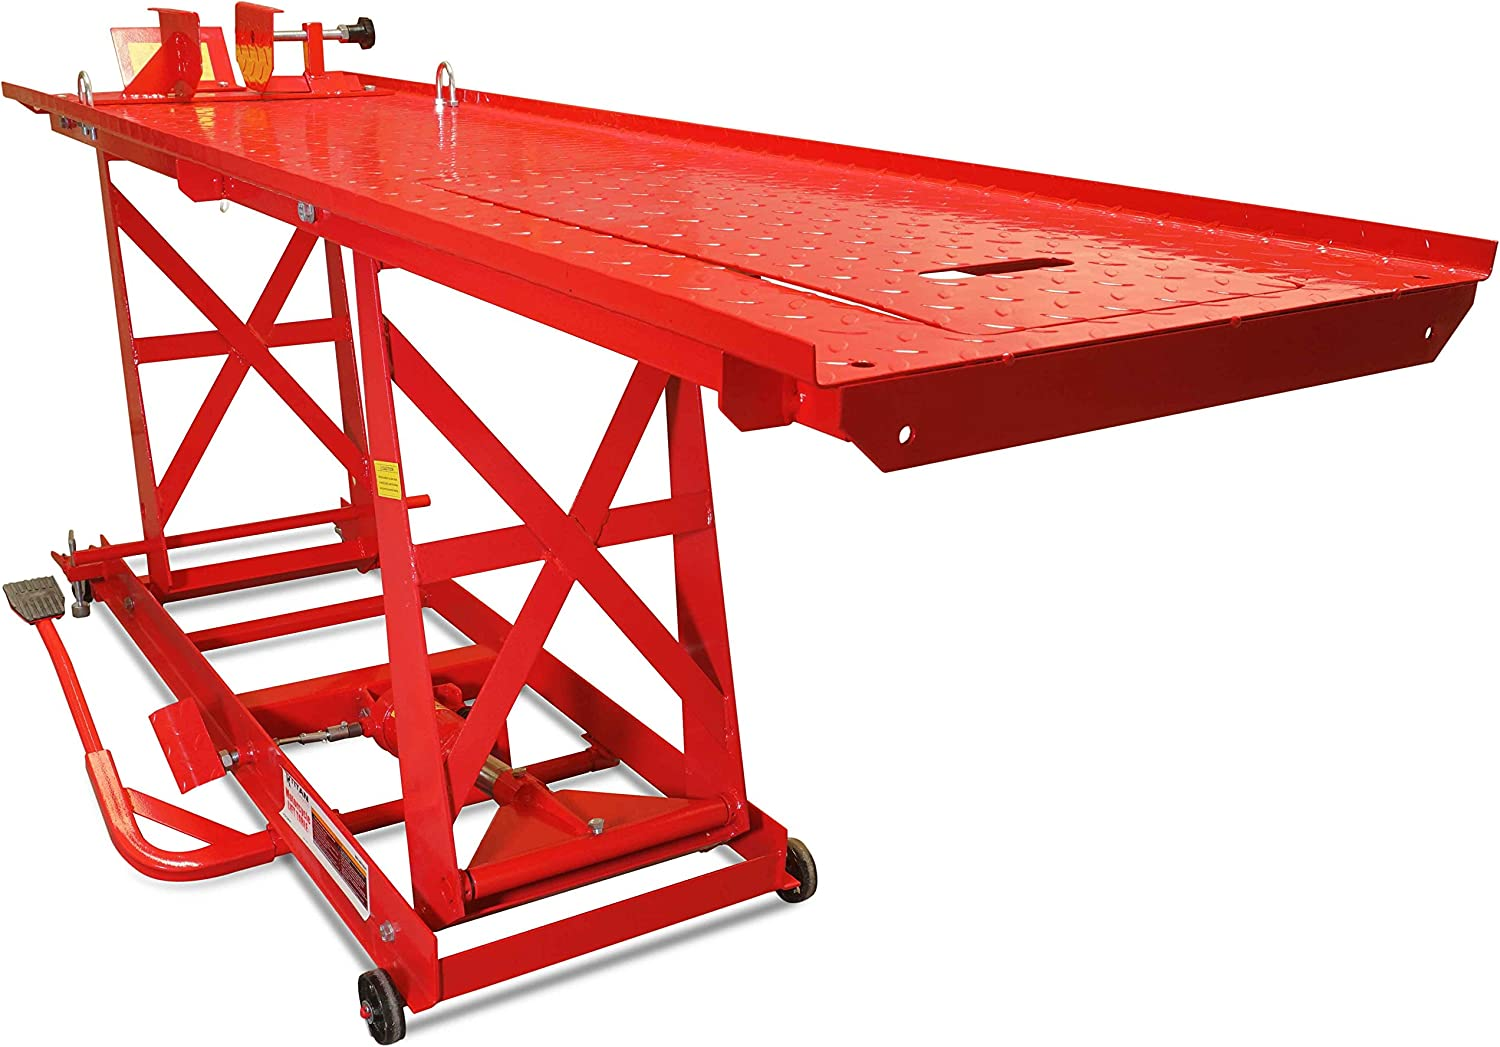 Titan Ramps Hydraulic Motorcycle Lift for Mechanics, Workshops, and Homes